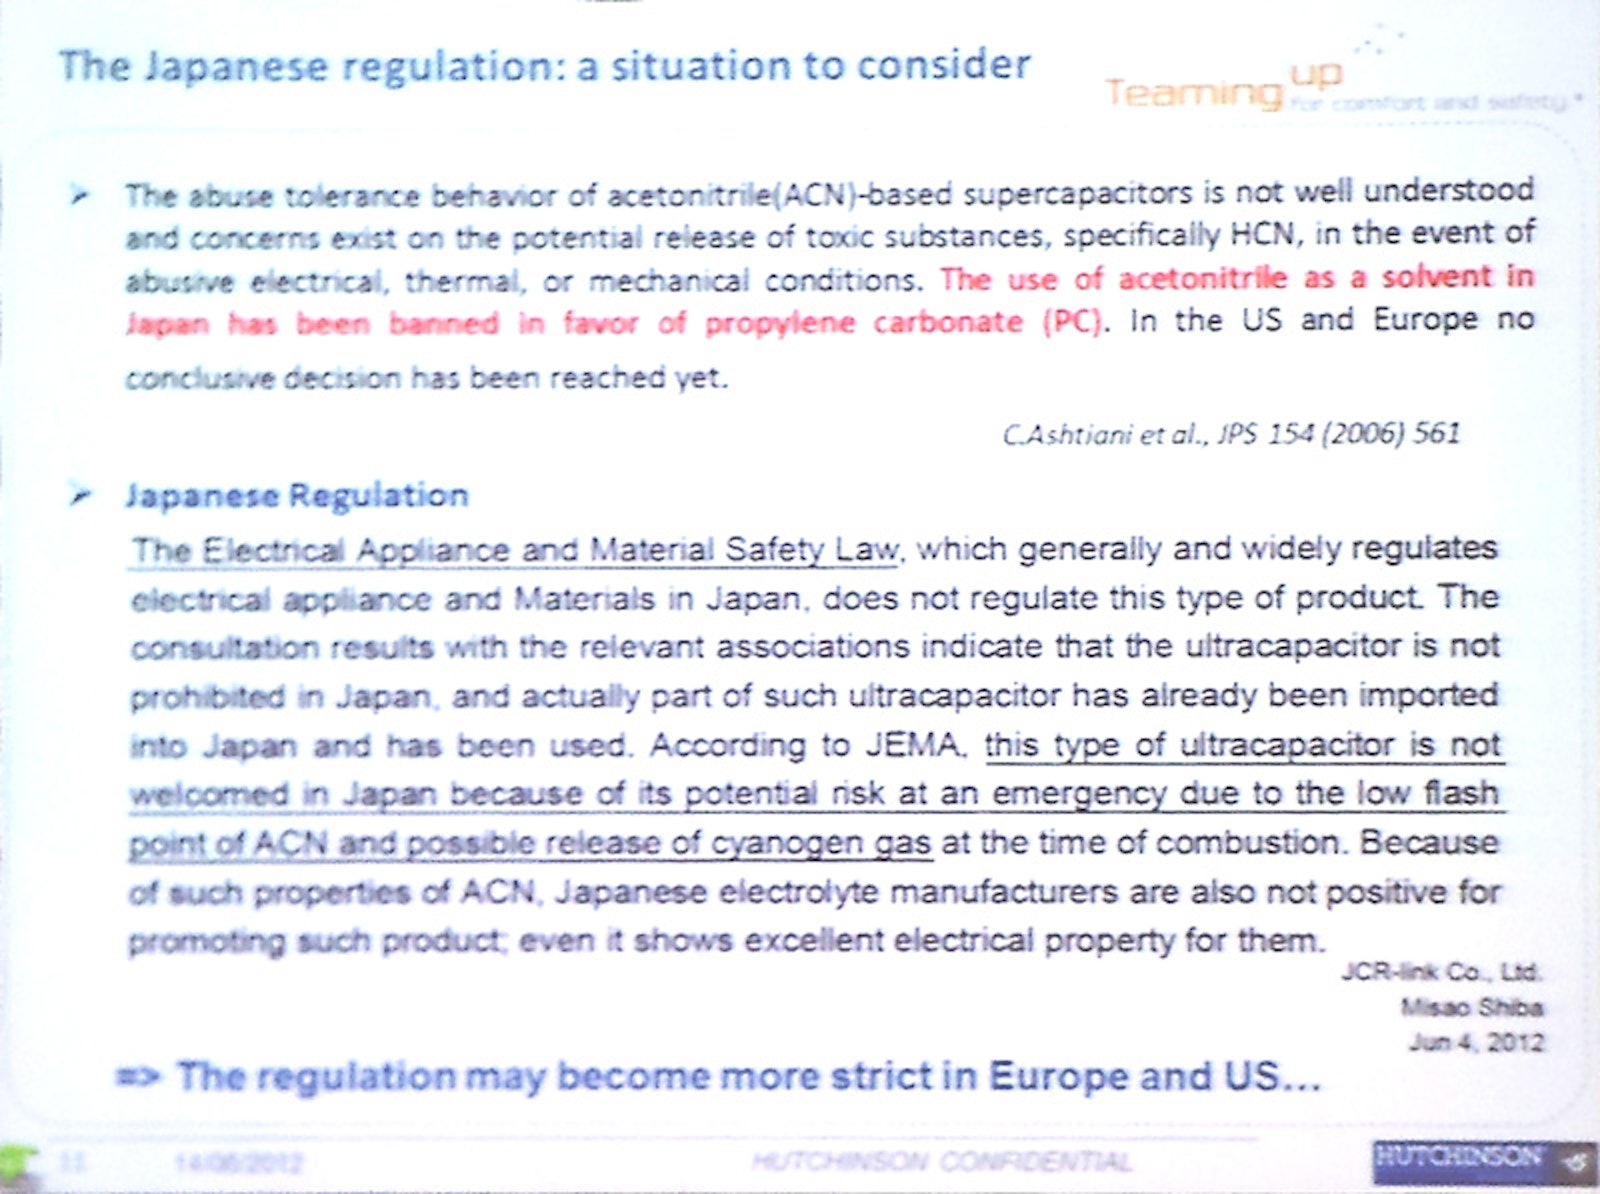 More acetonitrile concerns | Electric Vehicles Research